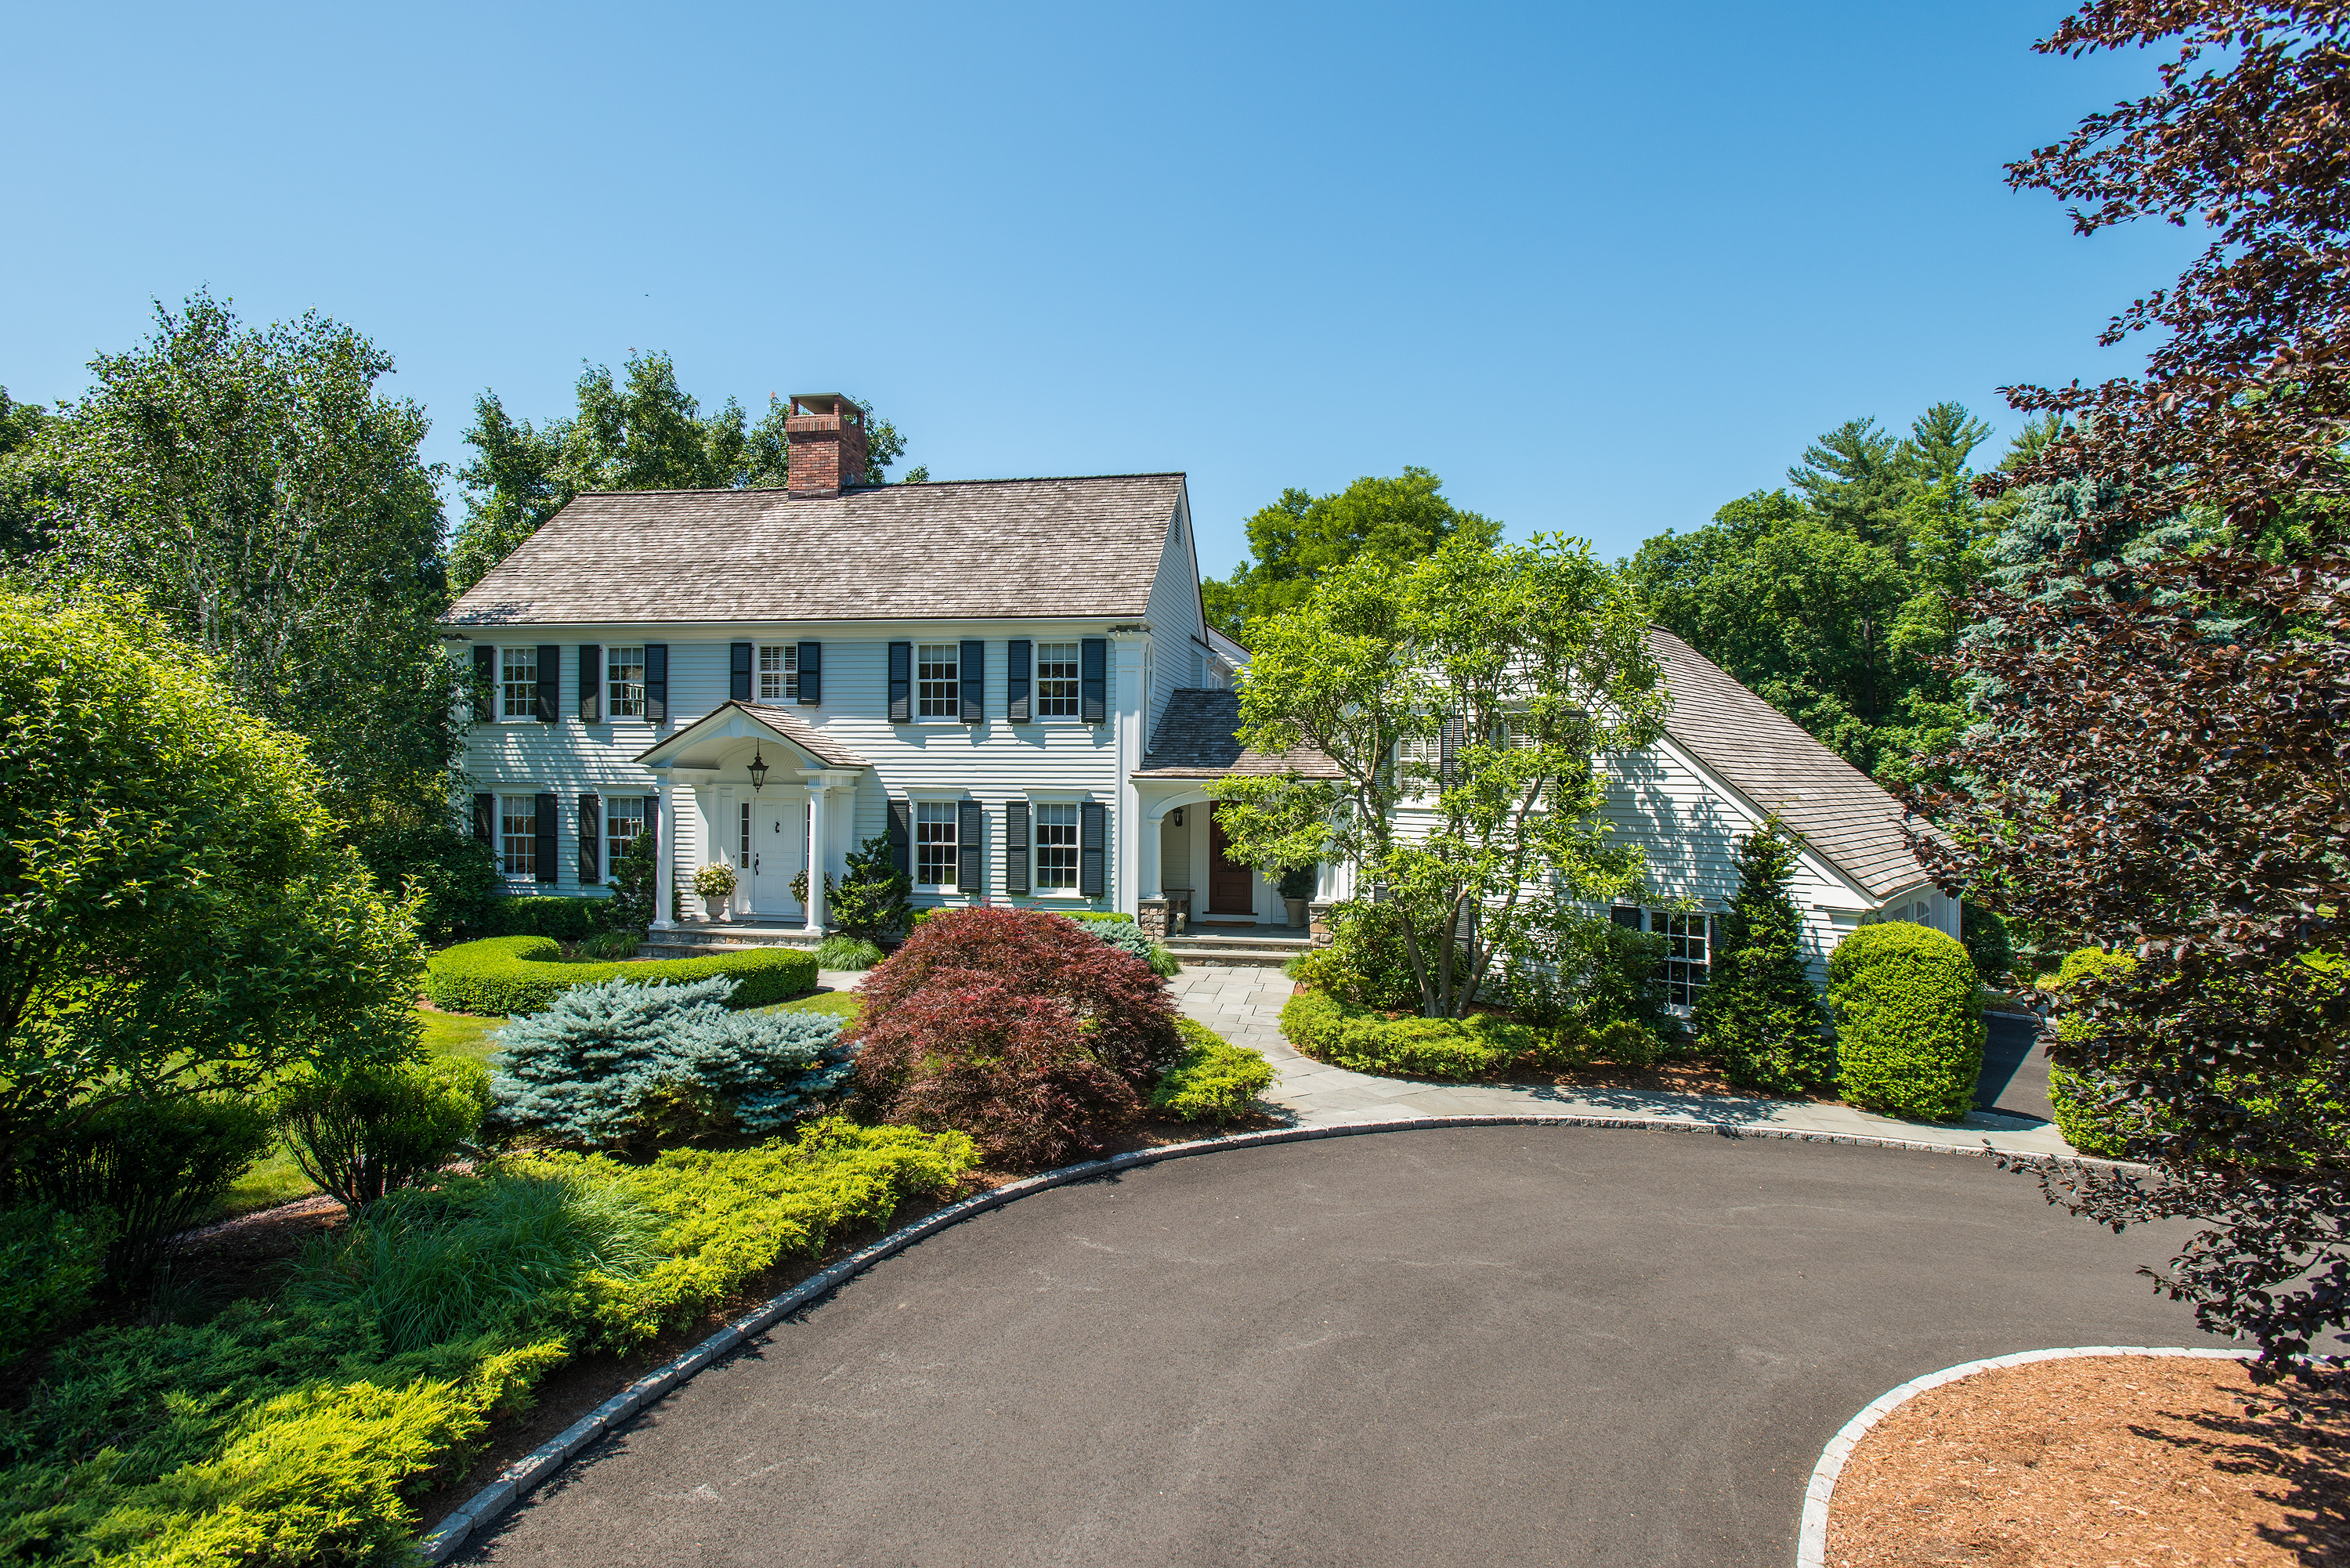 Single Family Home for Sale at Pure Perfection in South Wilton 173 Drum Hill Road Wilton, Connecticut, 06897 United States